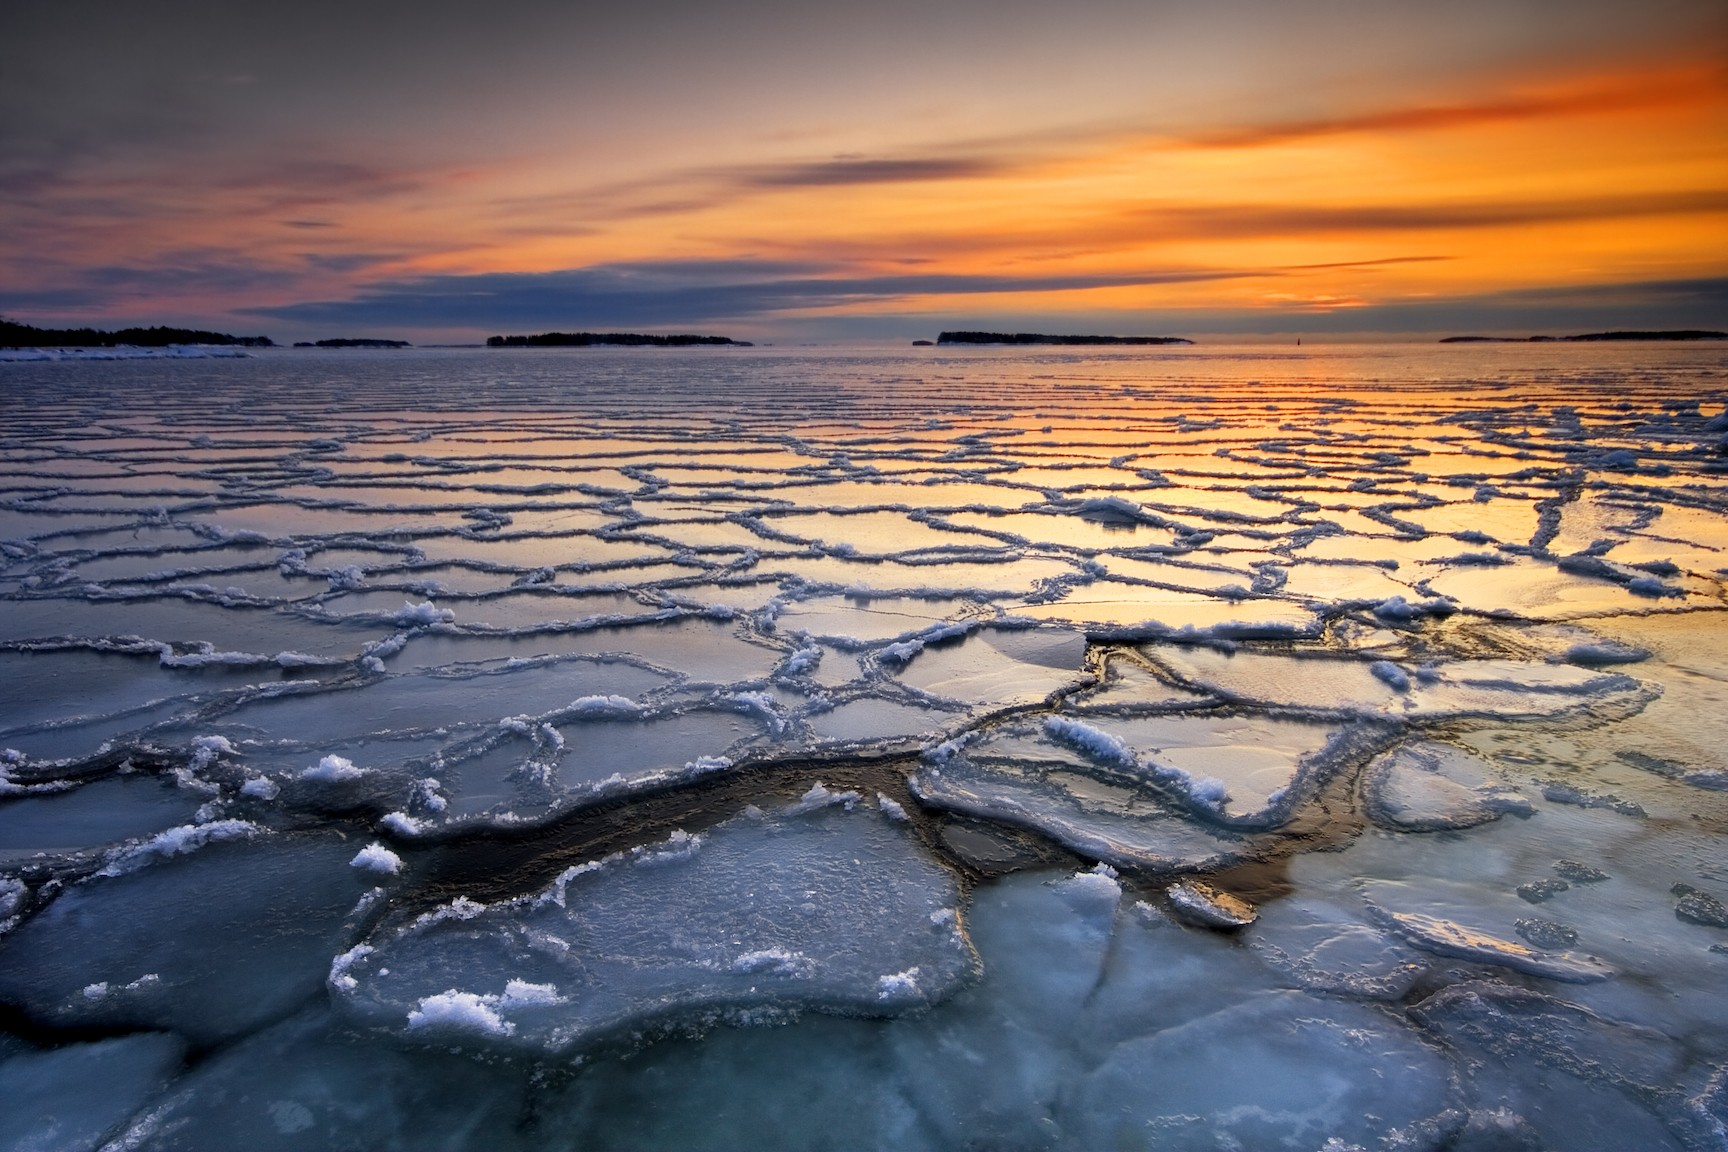 Experts from Aarhus University have discovered that small algae residing under Arctic sea ice have adapted to live in extreme conditions.